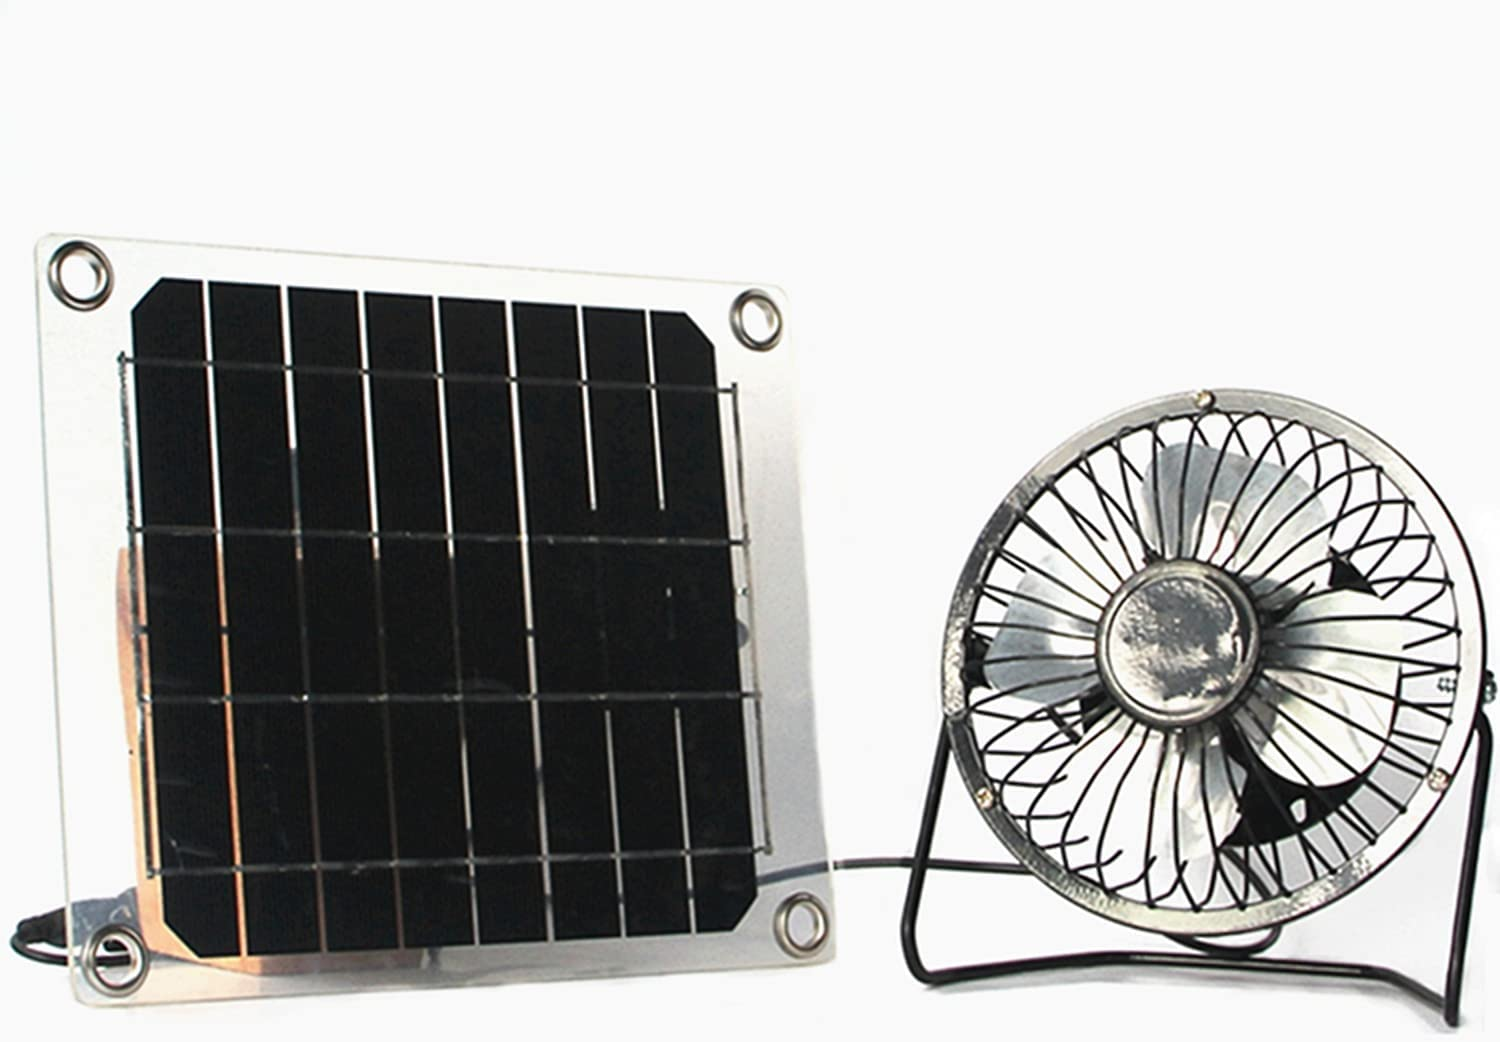 Solar fan 5W 4 inch mini ventilator for Greenhouse motorhome House Chicken House outdoor Home cooling doge Cat bird